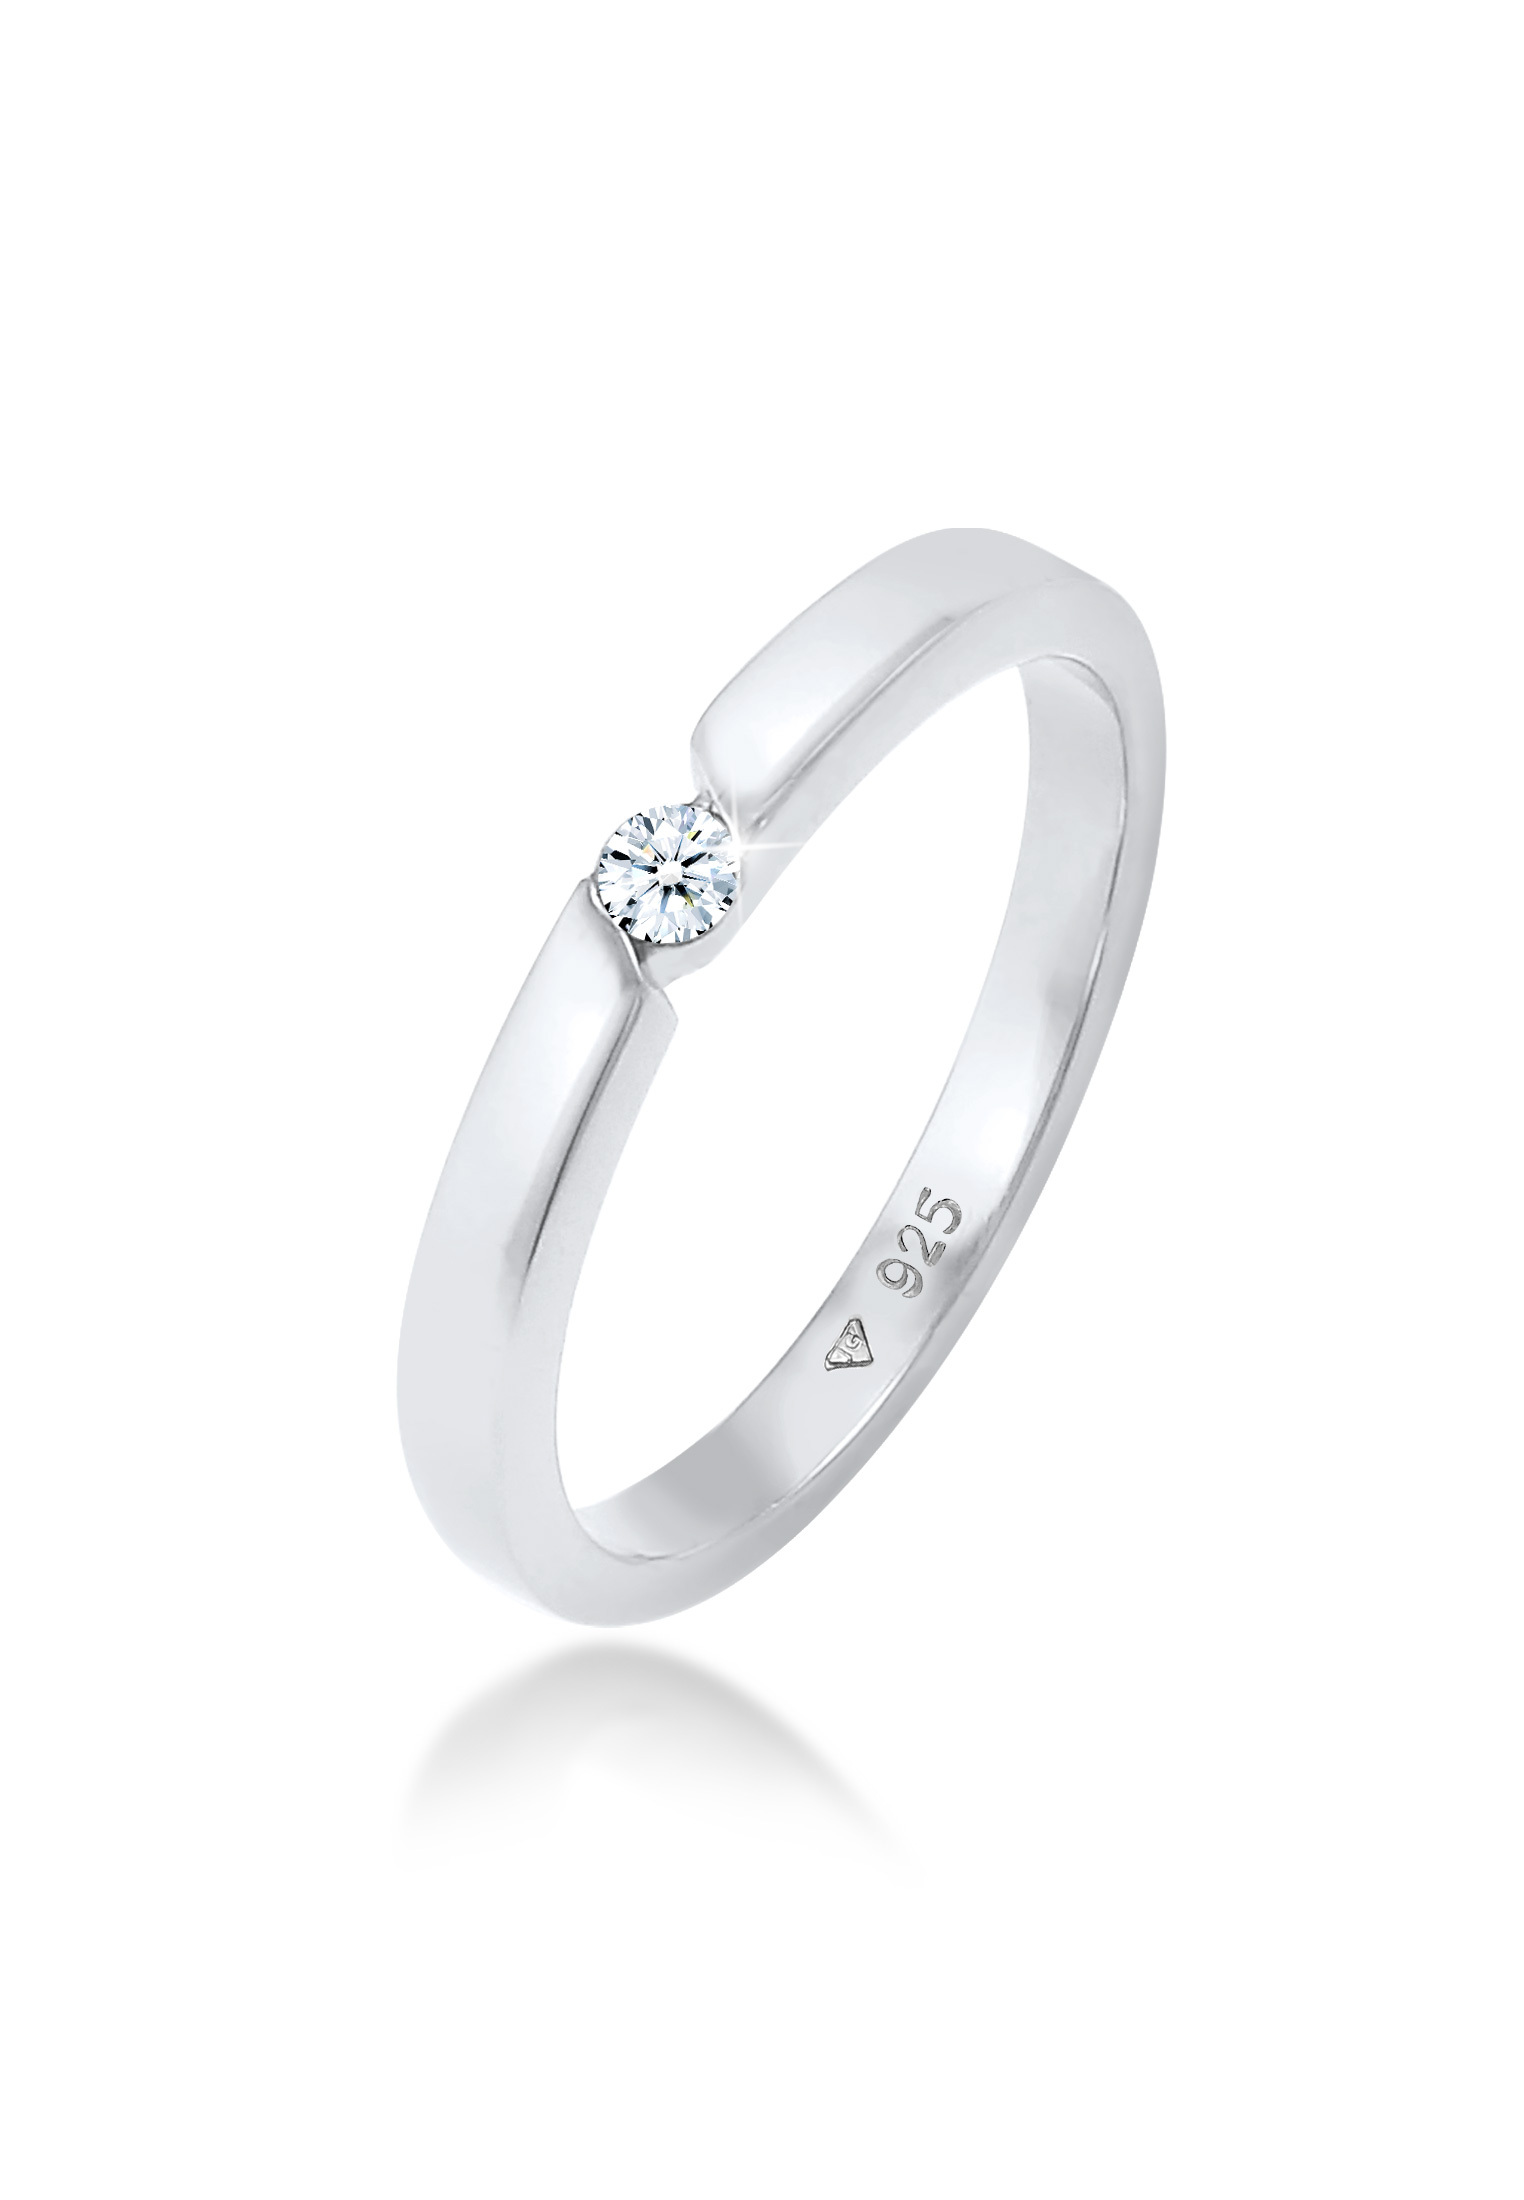 Ring   Diamant ( Weiß, 0,06 ct )   925er Sterling Silber